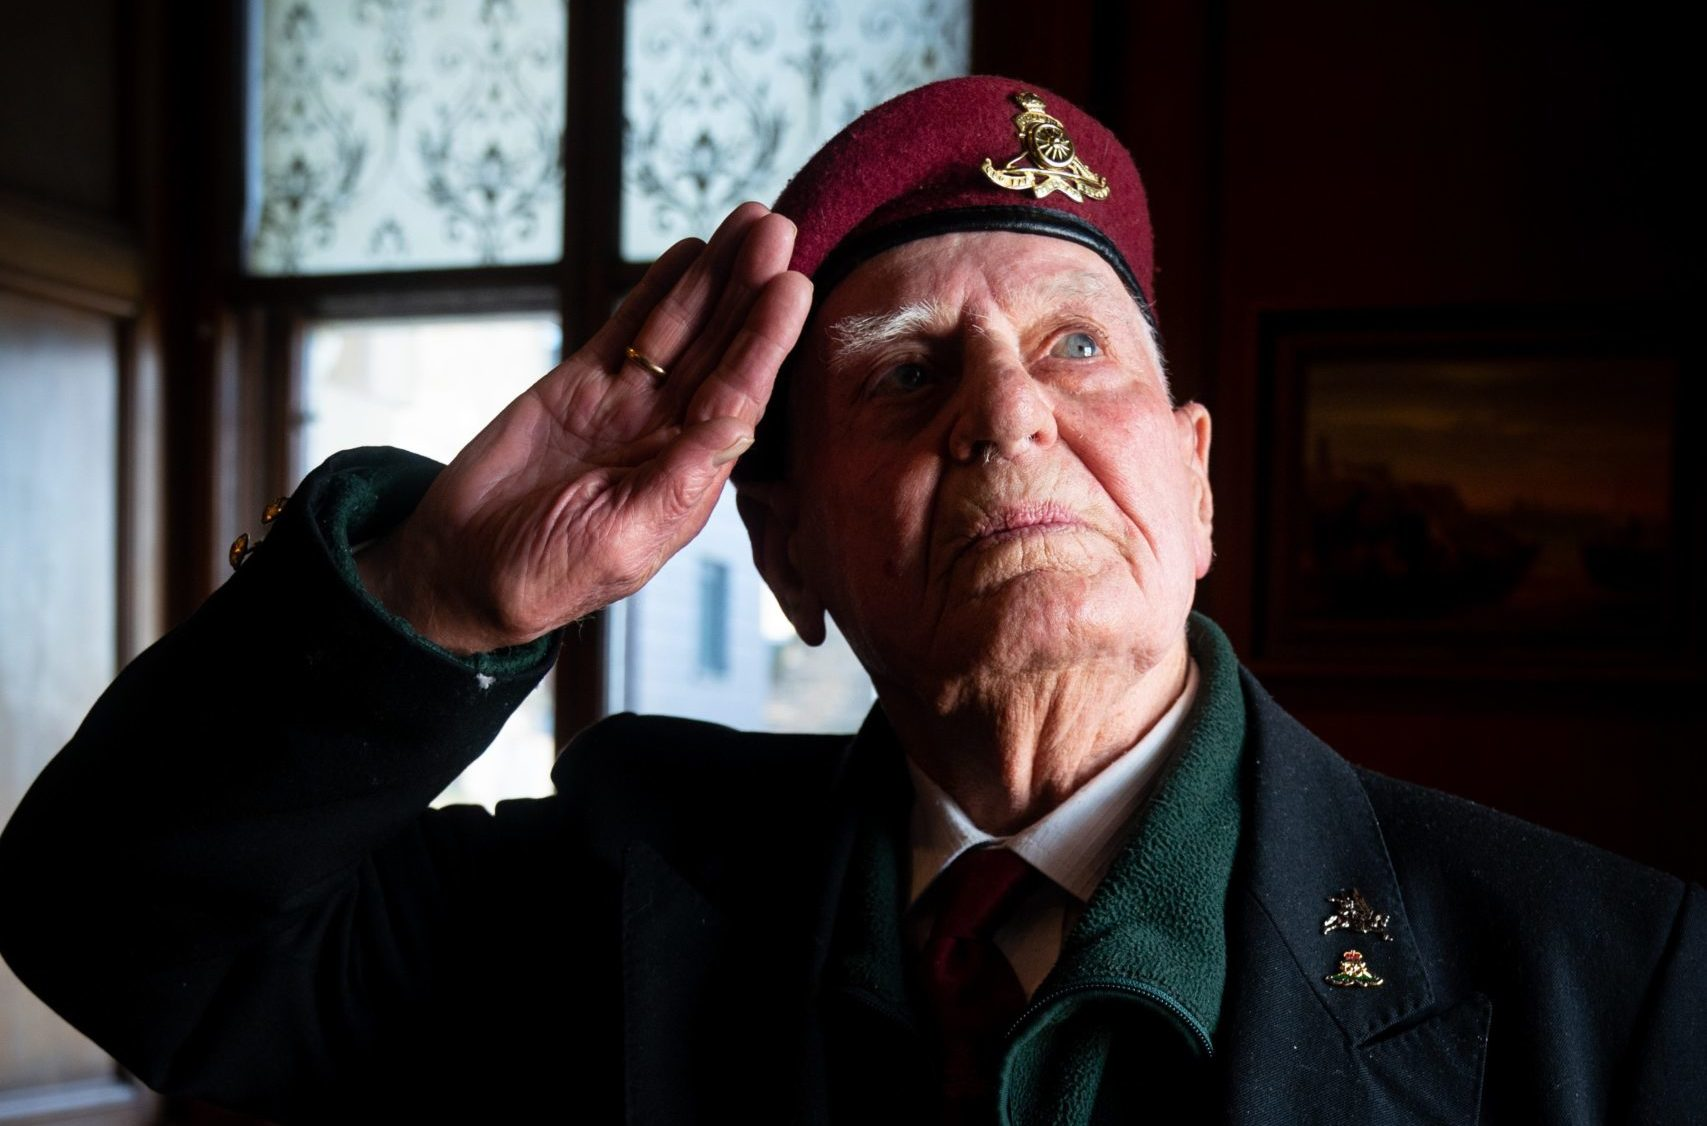 Veteran and former 'button boy' Myles Shandley, now 91, in Edinburgh last week